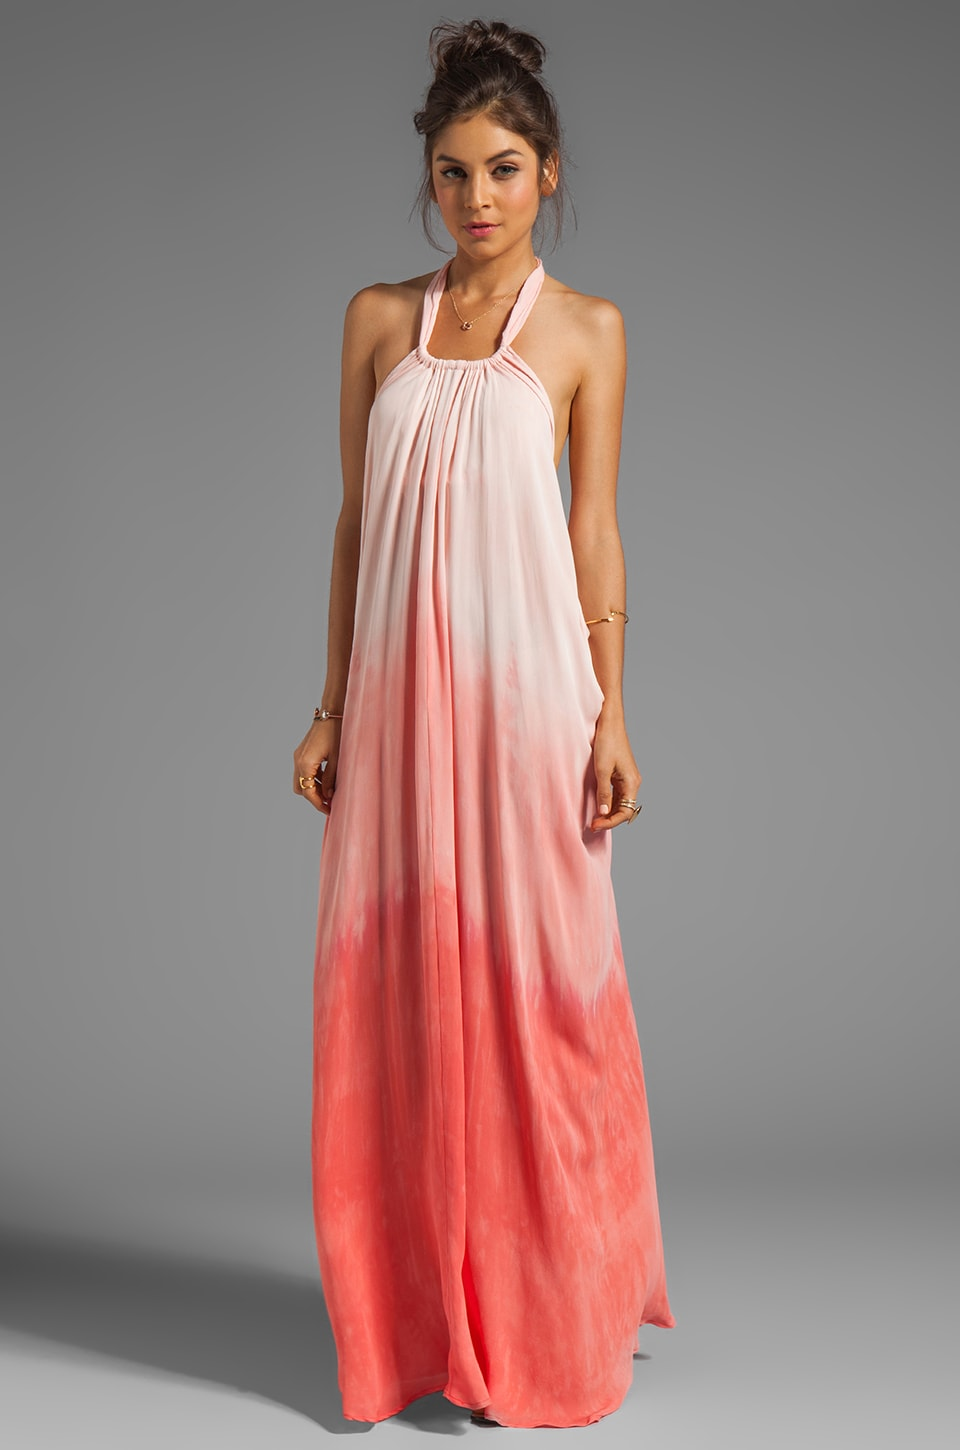 sen Marlena Dress in Salmon Dip Dye